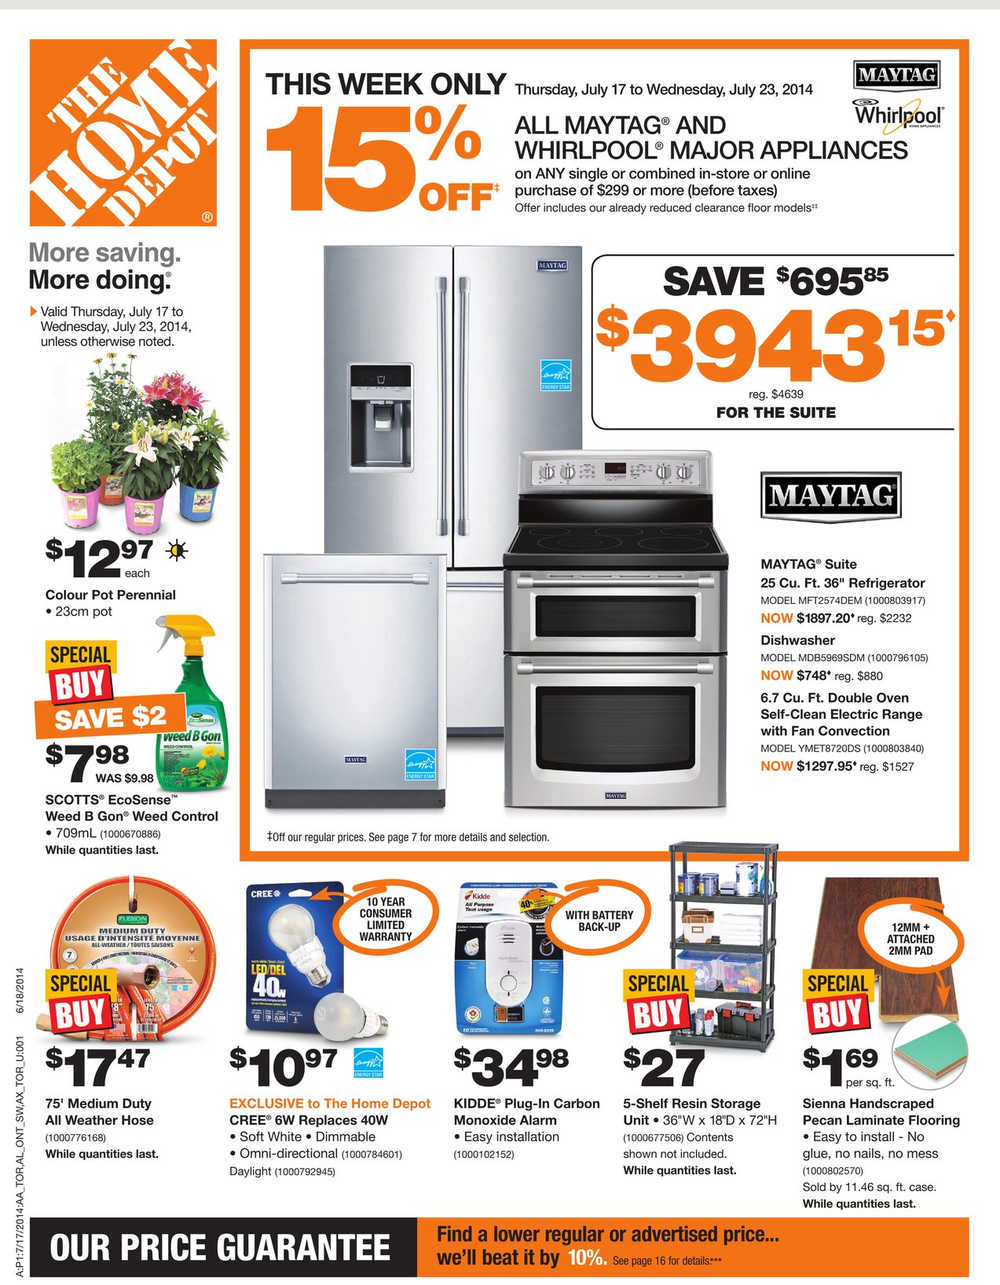 home depot 2 x 10 12 with Home Depot Flyer On July 17 To July 23 on plyRight 1096 Transmittal Tax Forms 8 likewise 46716861 additionally Piso Automotriz likewise Home Depot Flyer On July 17 To July 23 besides 300651032.